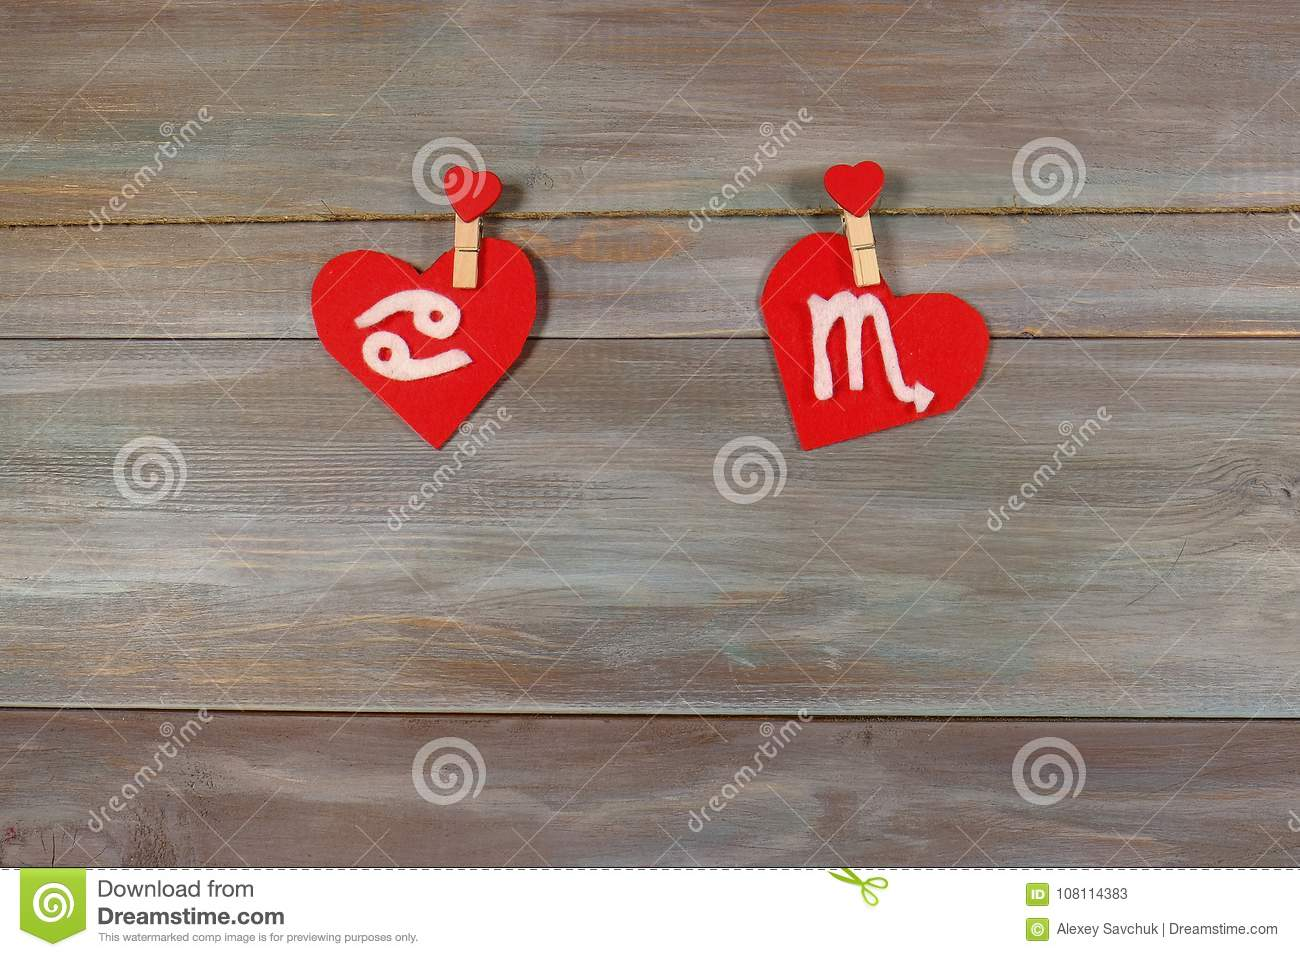 Cancer and scorpion. signs of the zodiac and heart. wooden backg